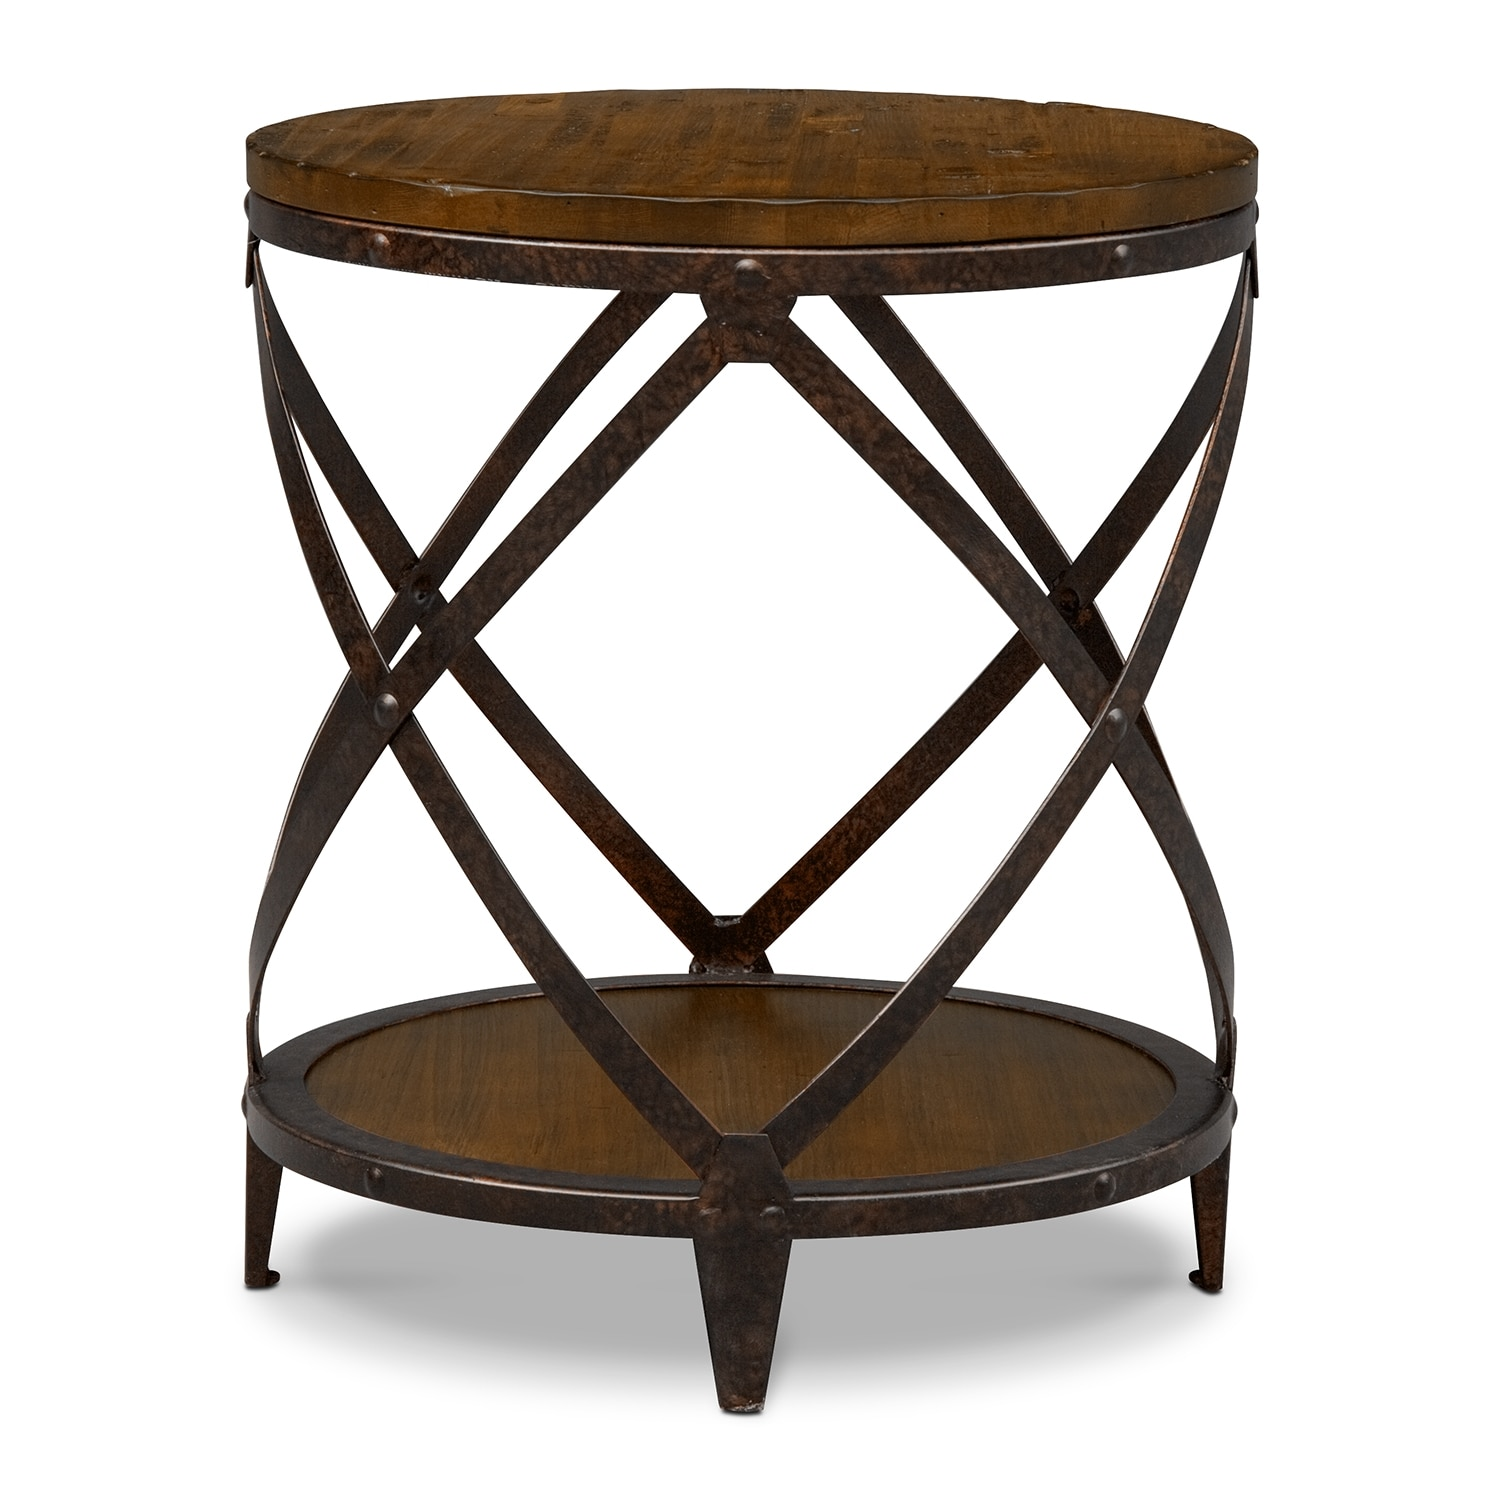 shortline round end table  distressed pine  american signature  - shortline round end table  distressed pine